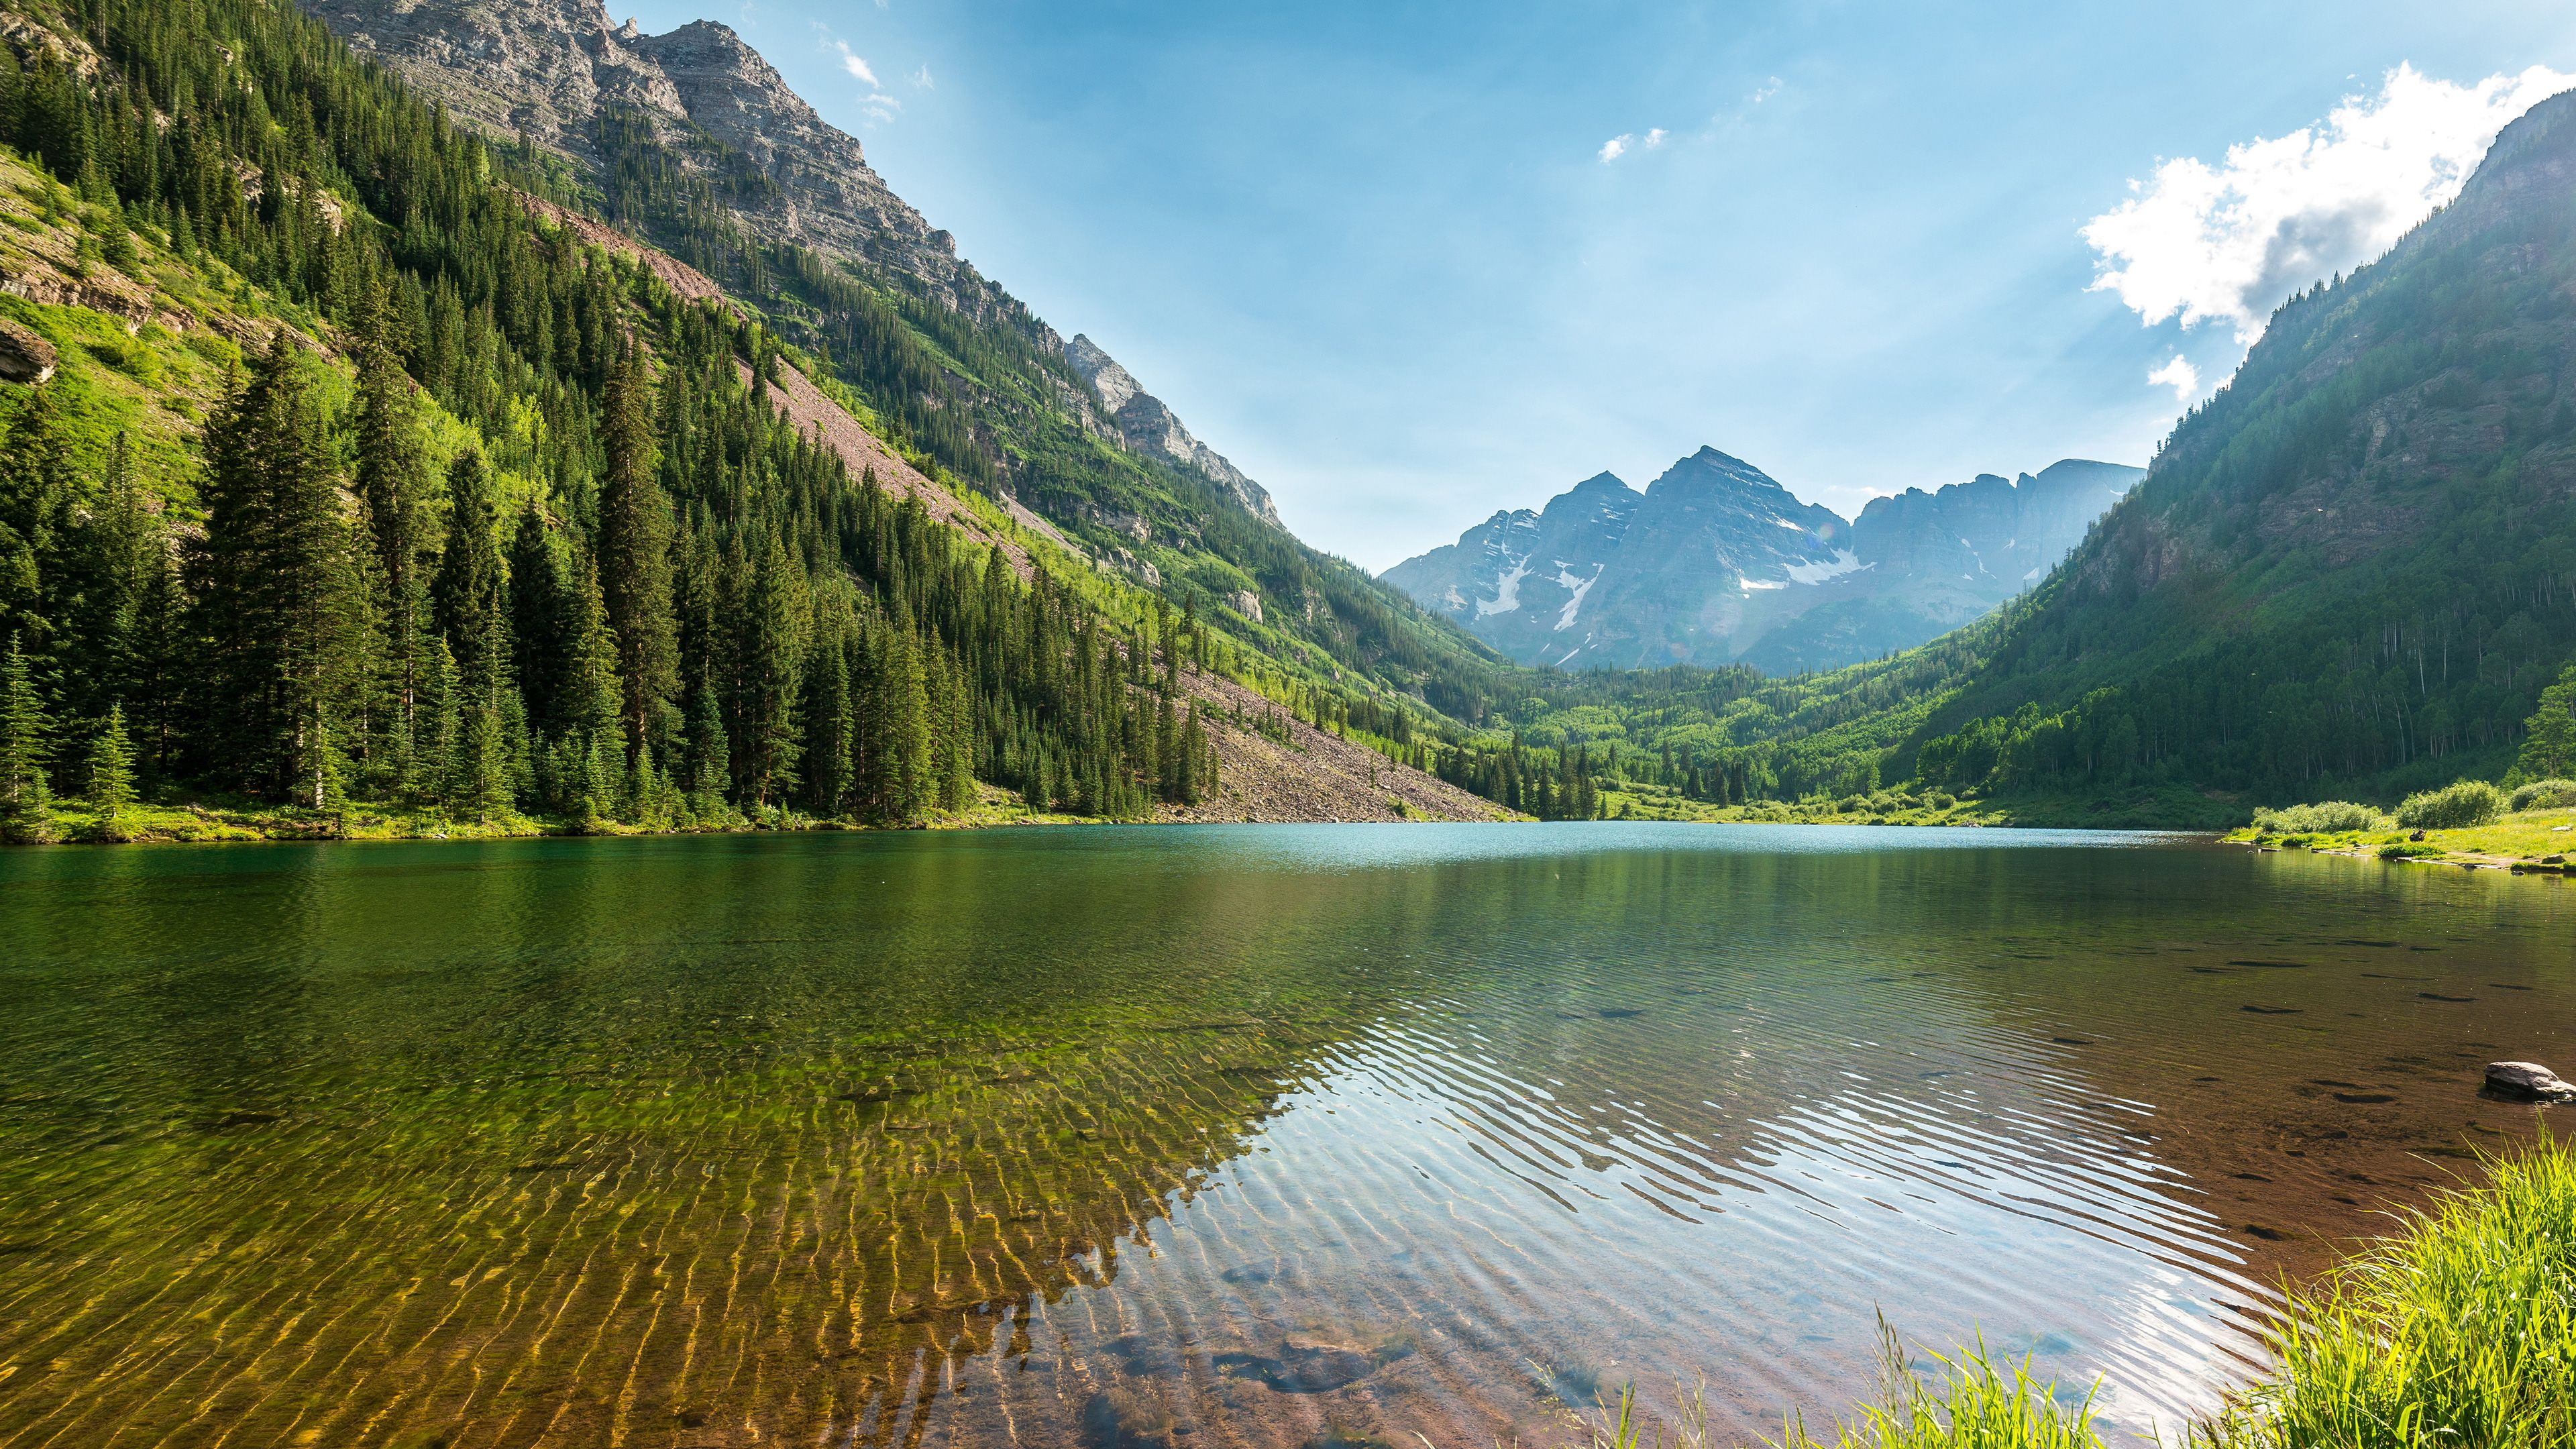 3840x2160 Nature Lake And Mountains 4k Hd Dell Xps 13 wallpapers | Tablet ...